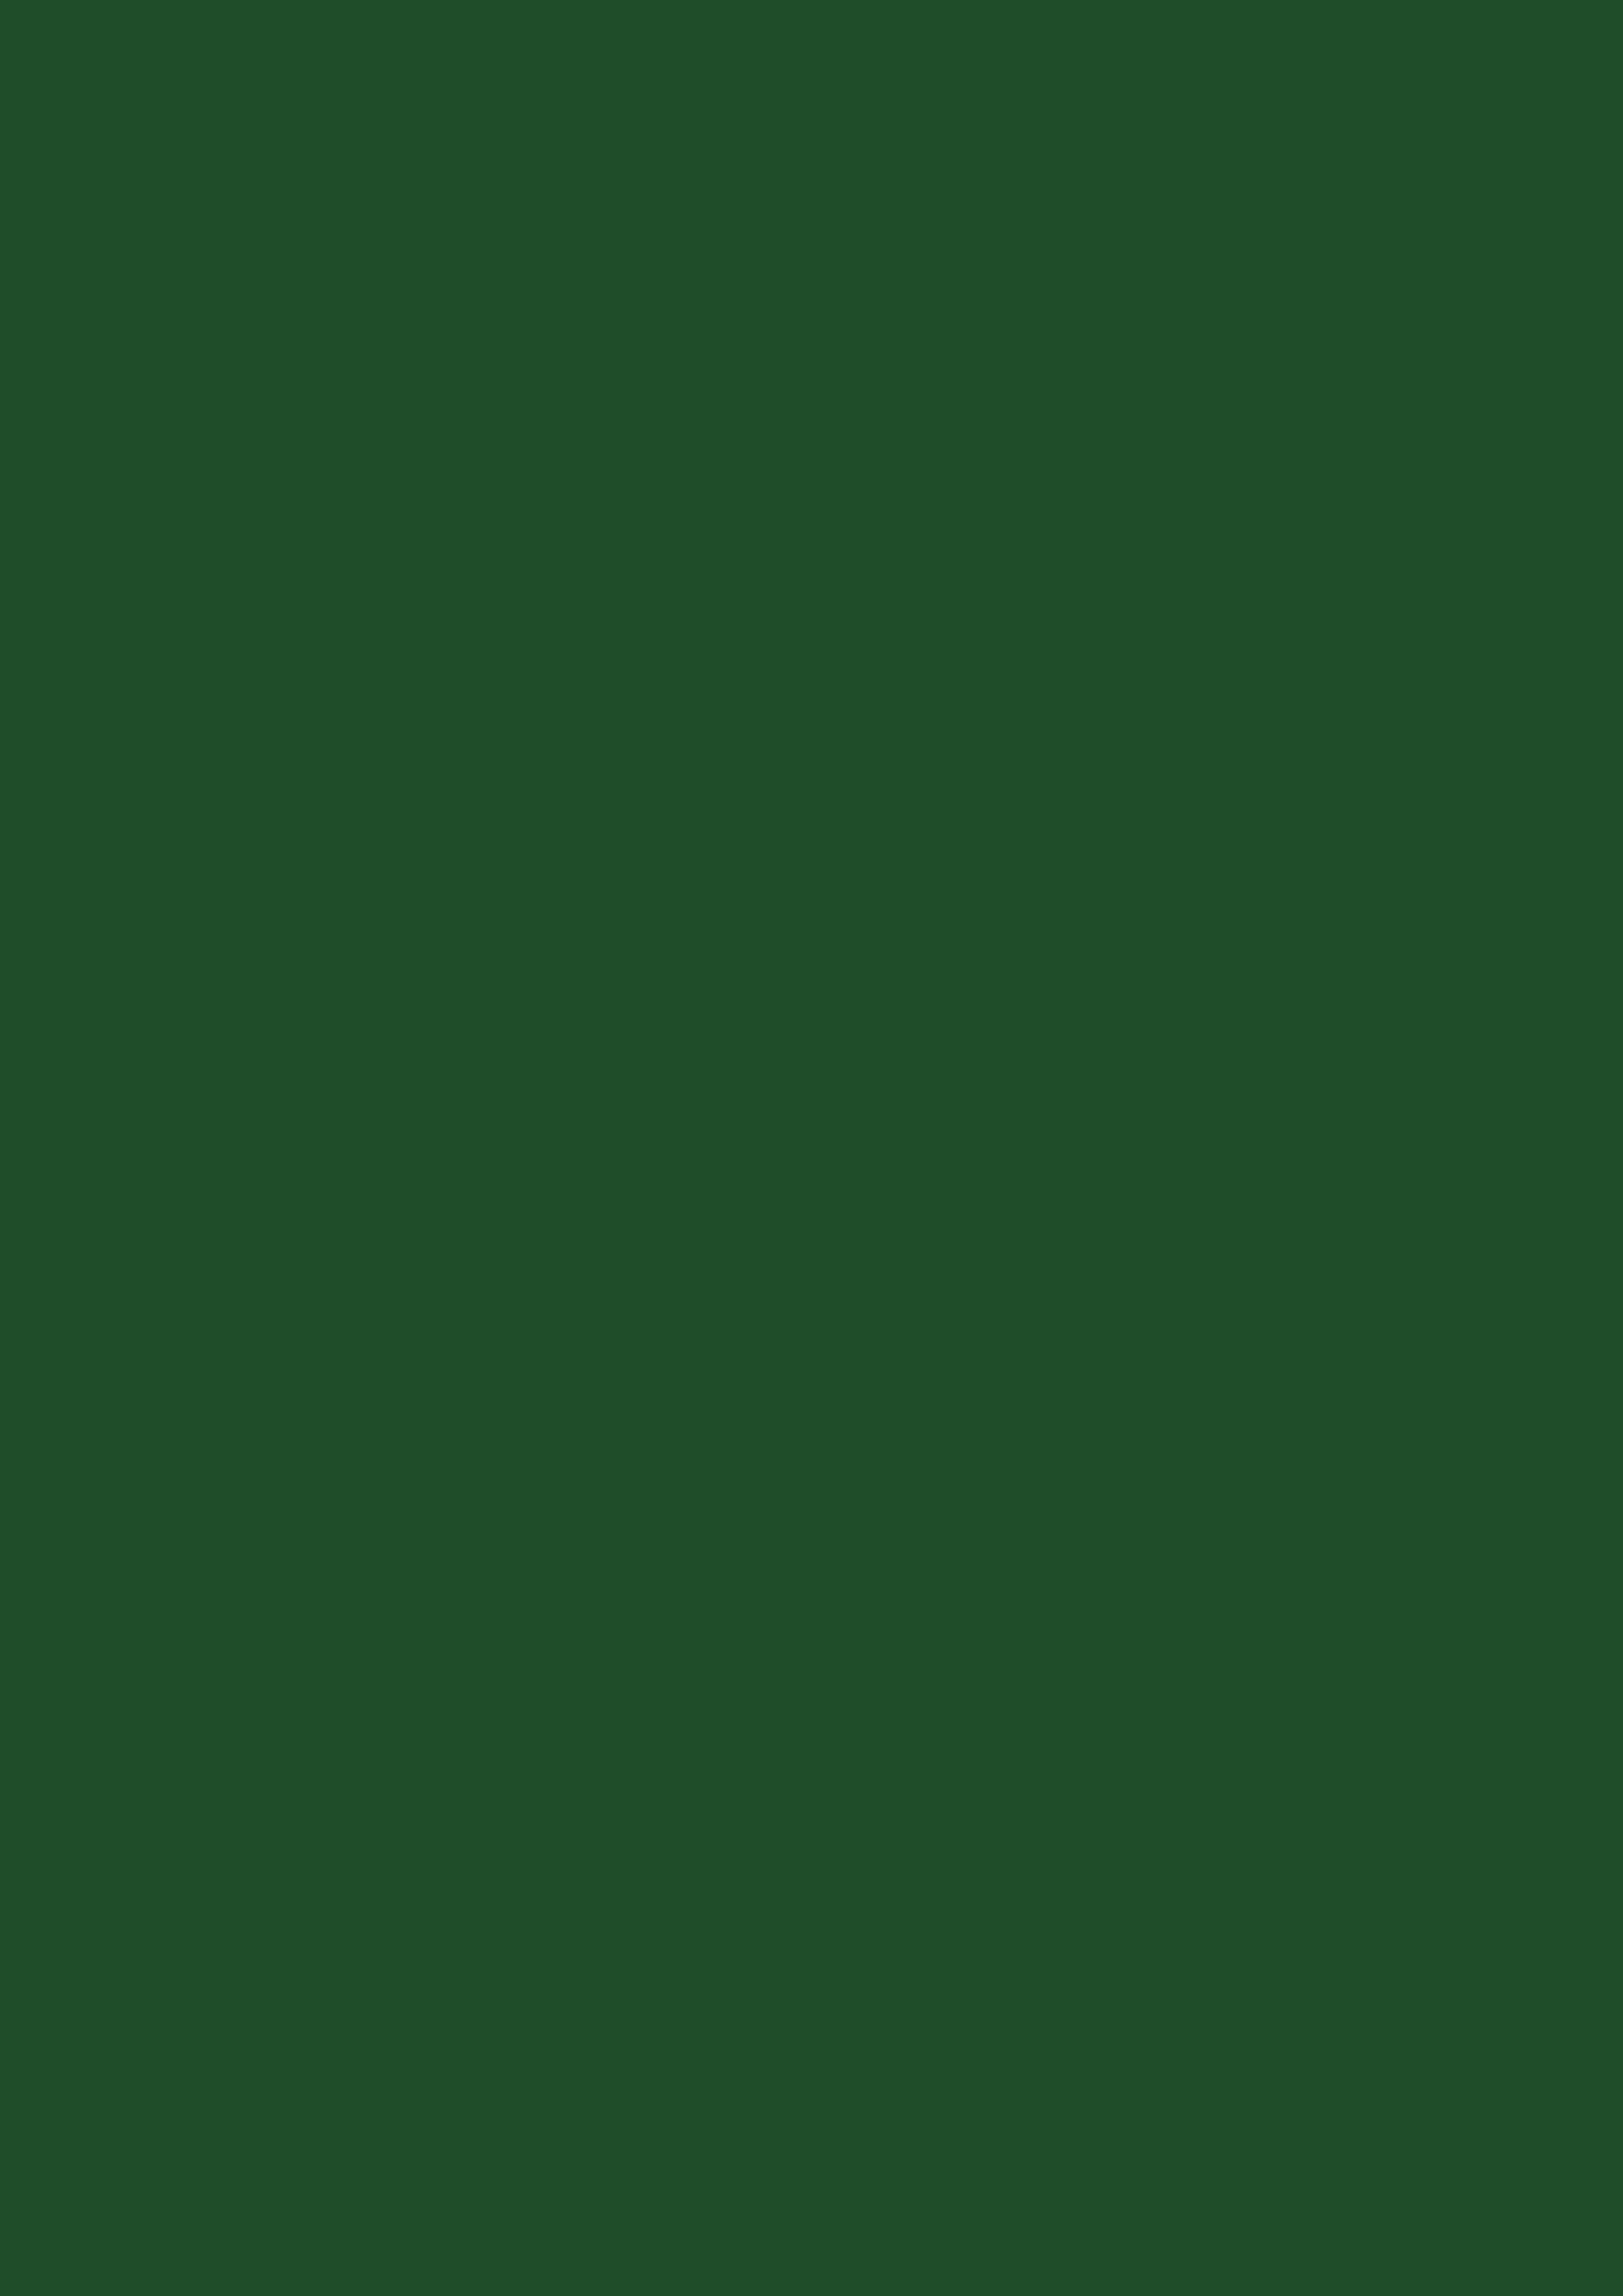 2480x3508 Cal Poly Green Solid Color Background